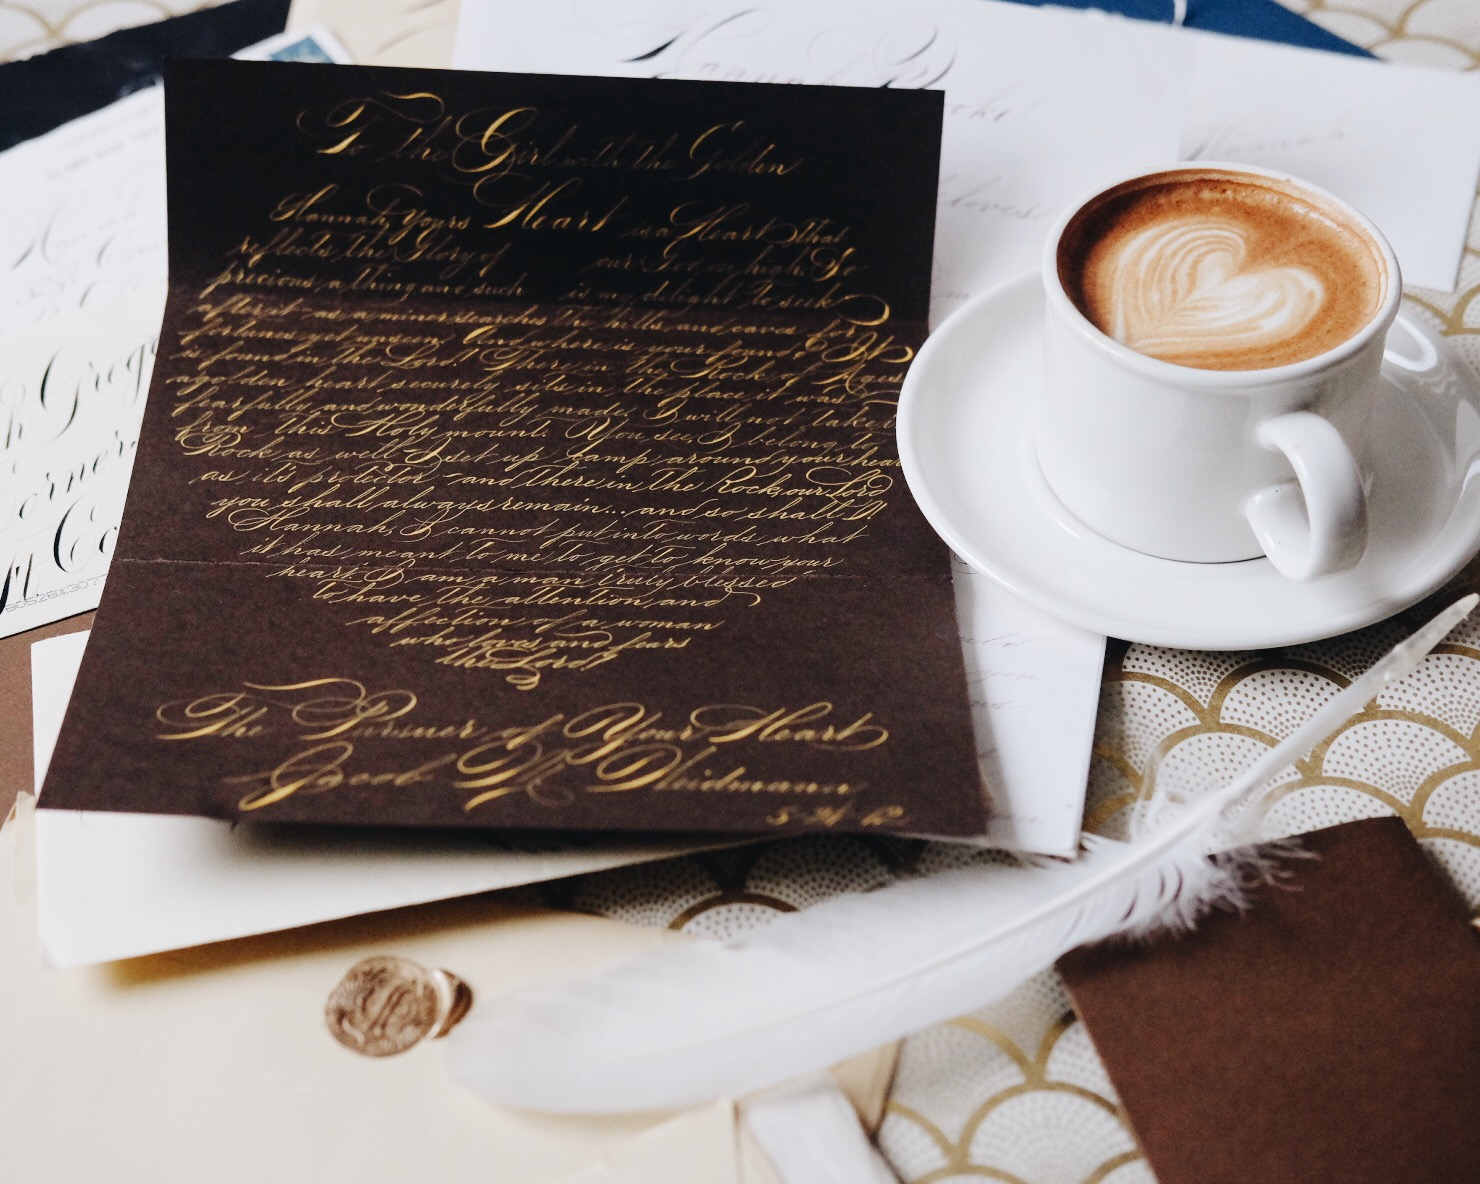 """""""To the Girl with the Golden Heart,"""" this heart-shaped letter begins. Written in gold ink, this is but one example of the love letters Jake wrote to capture his wife Hannah's heart."""